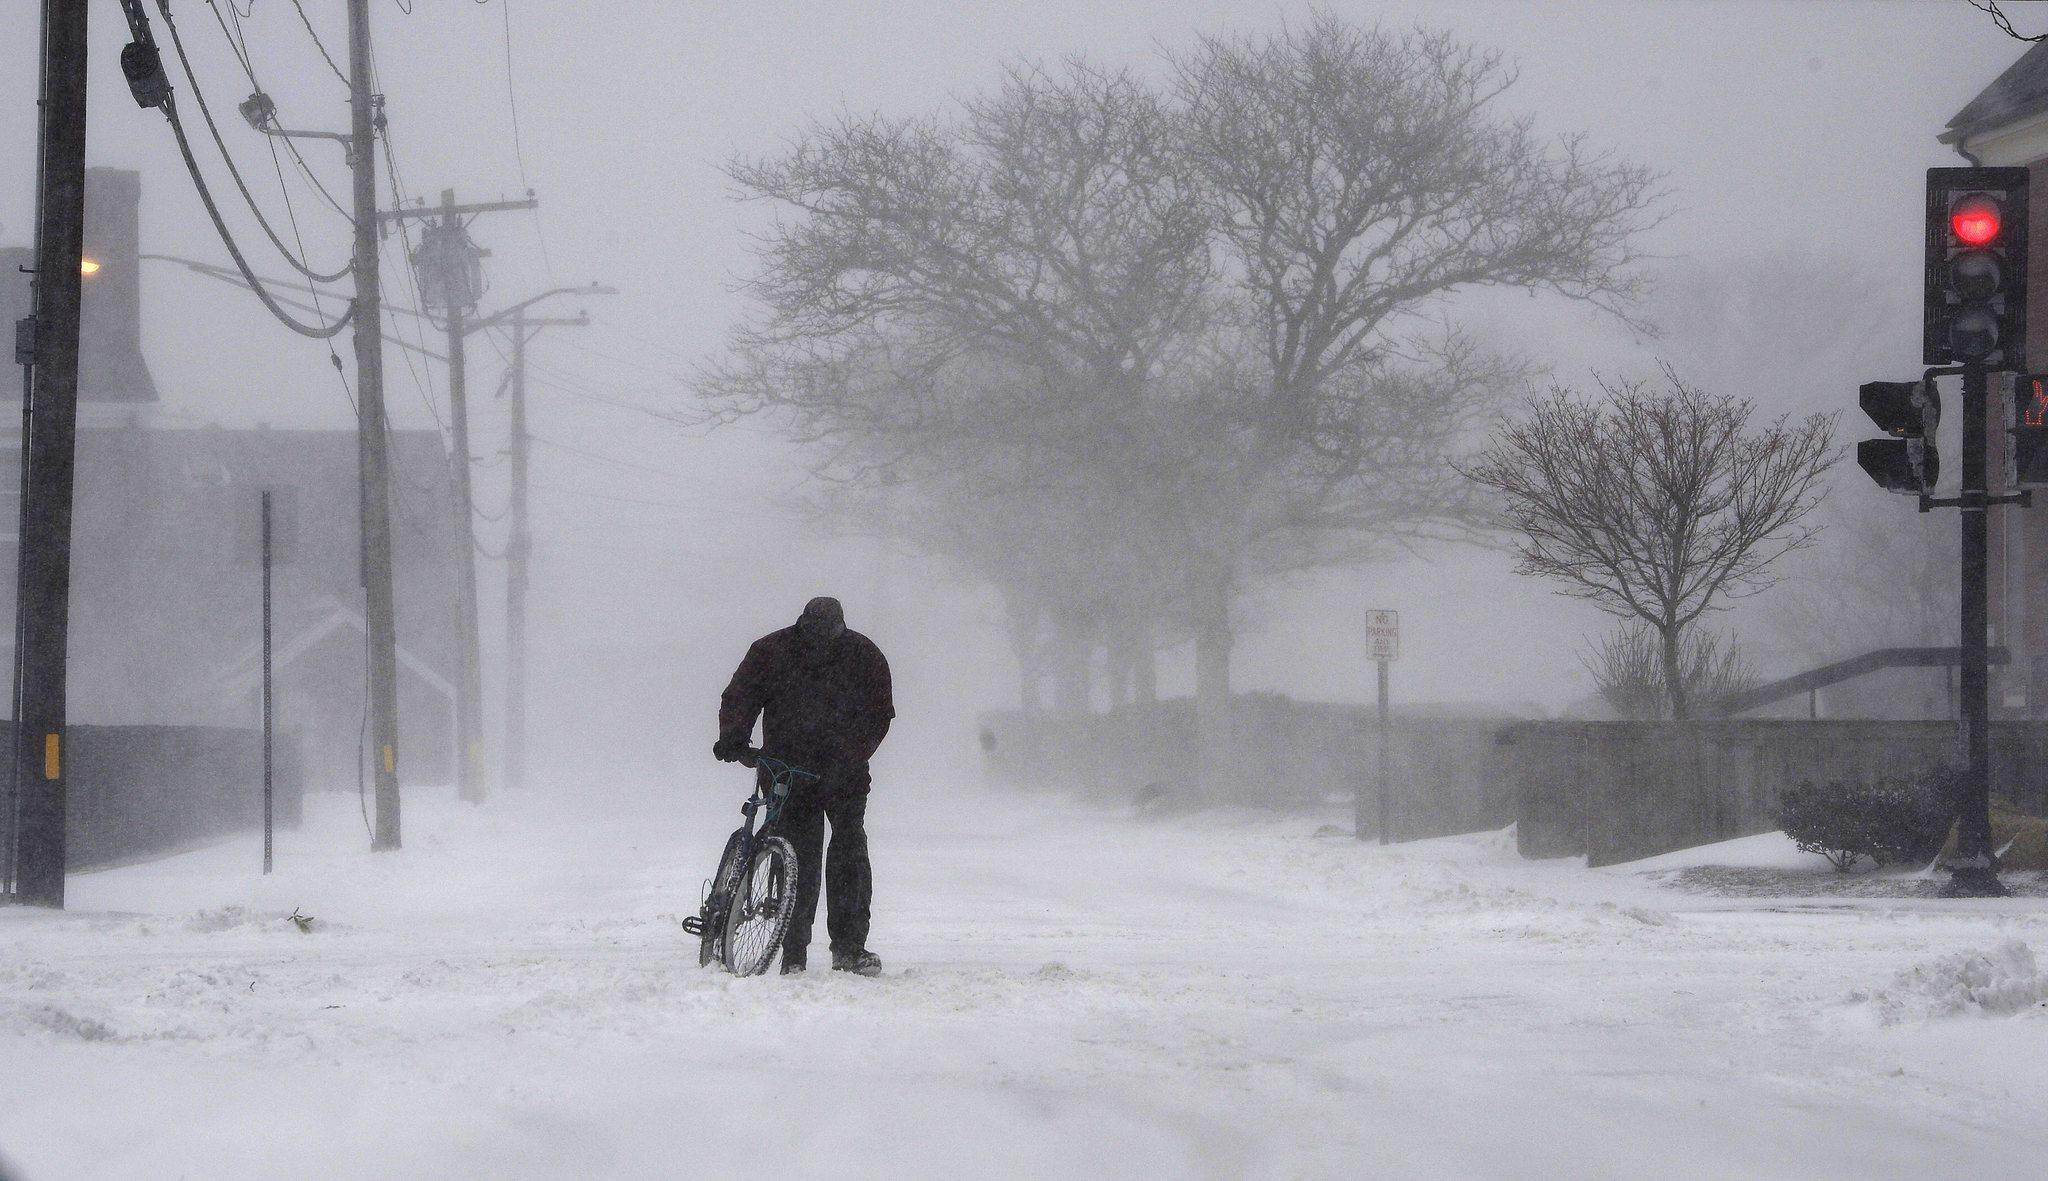 A cyclist walks his bicycle in white-out conditions in Hyannis, Mass., on Wednesday. A storm blanketed the area of Cape Cod, Mass., with up to six inches of snow and winds topping 60 mph, creating hazardous driving conditions and power outages.